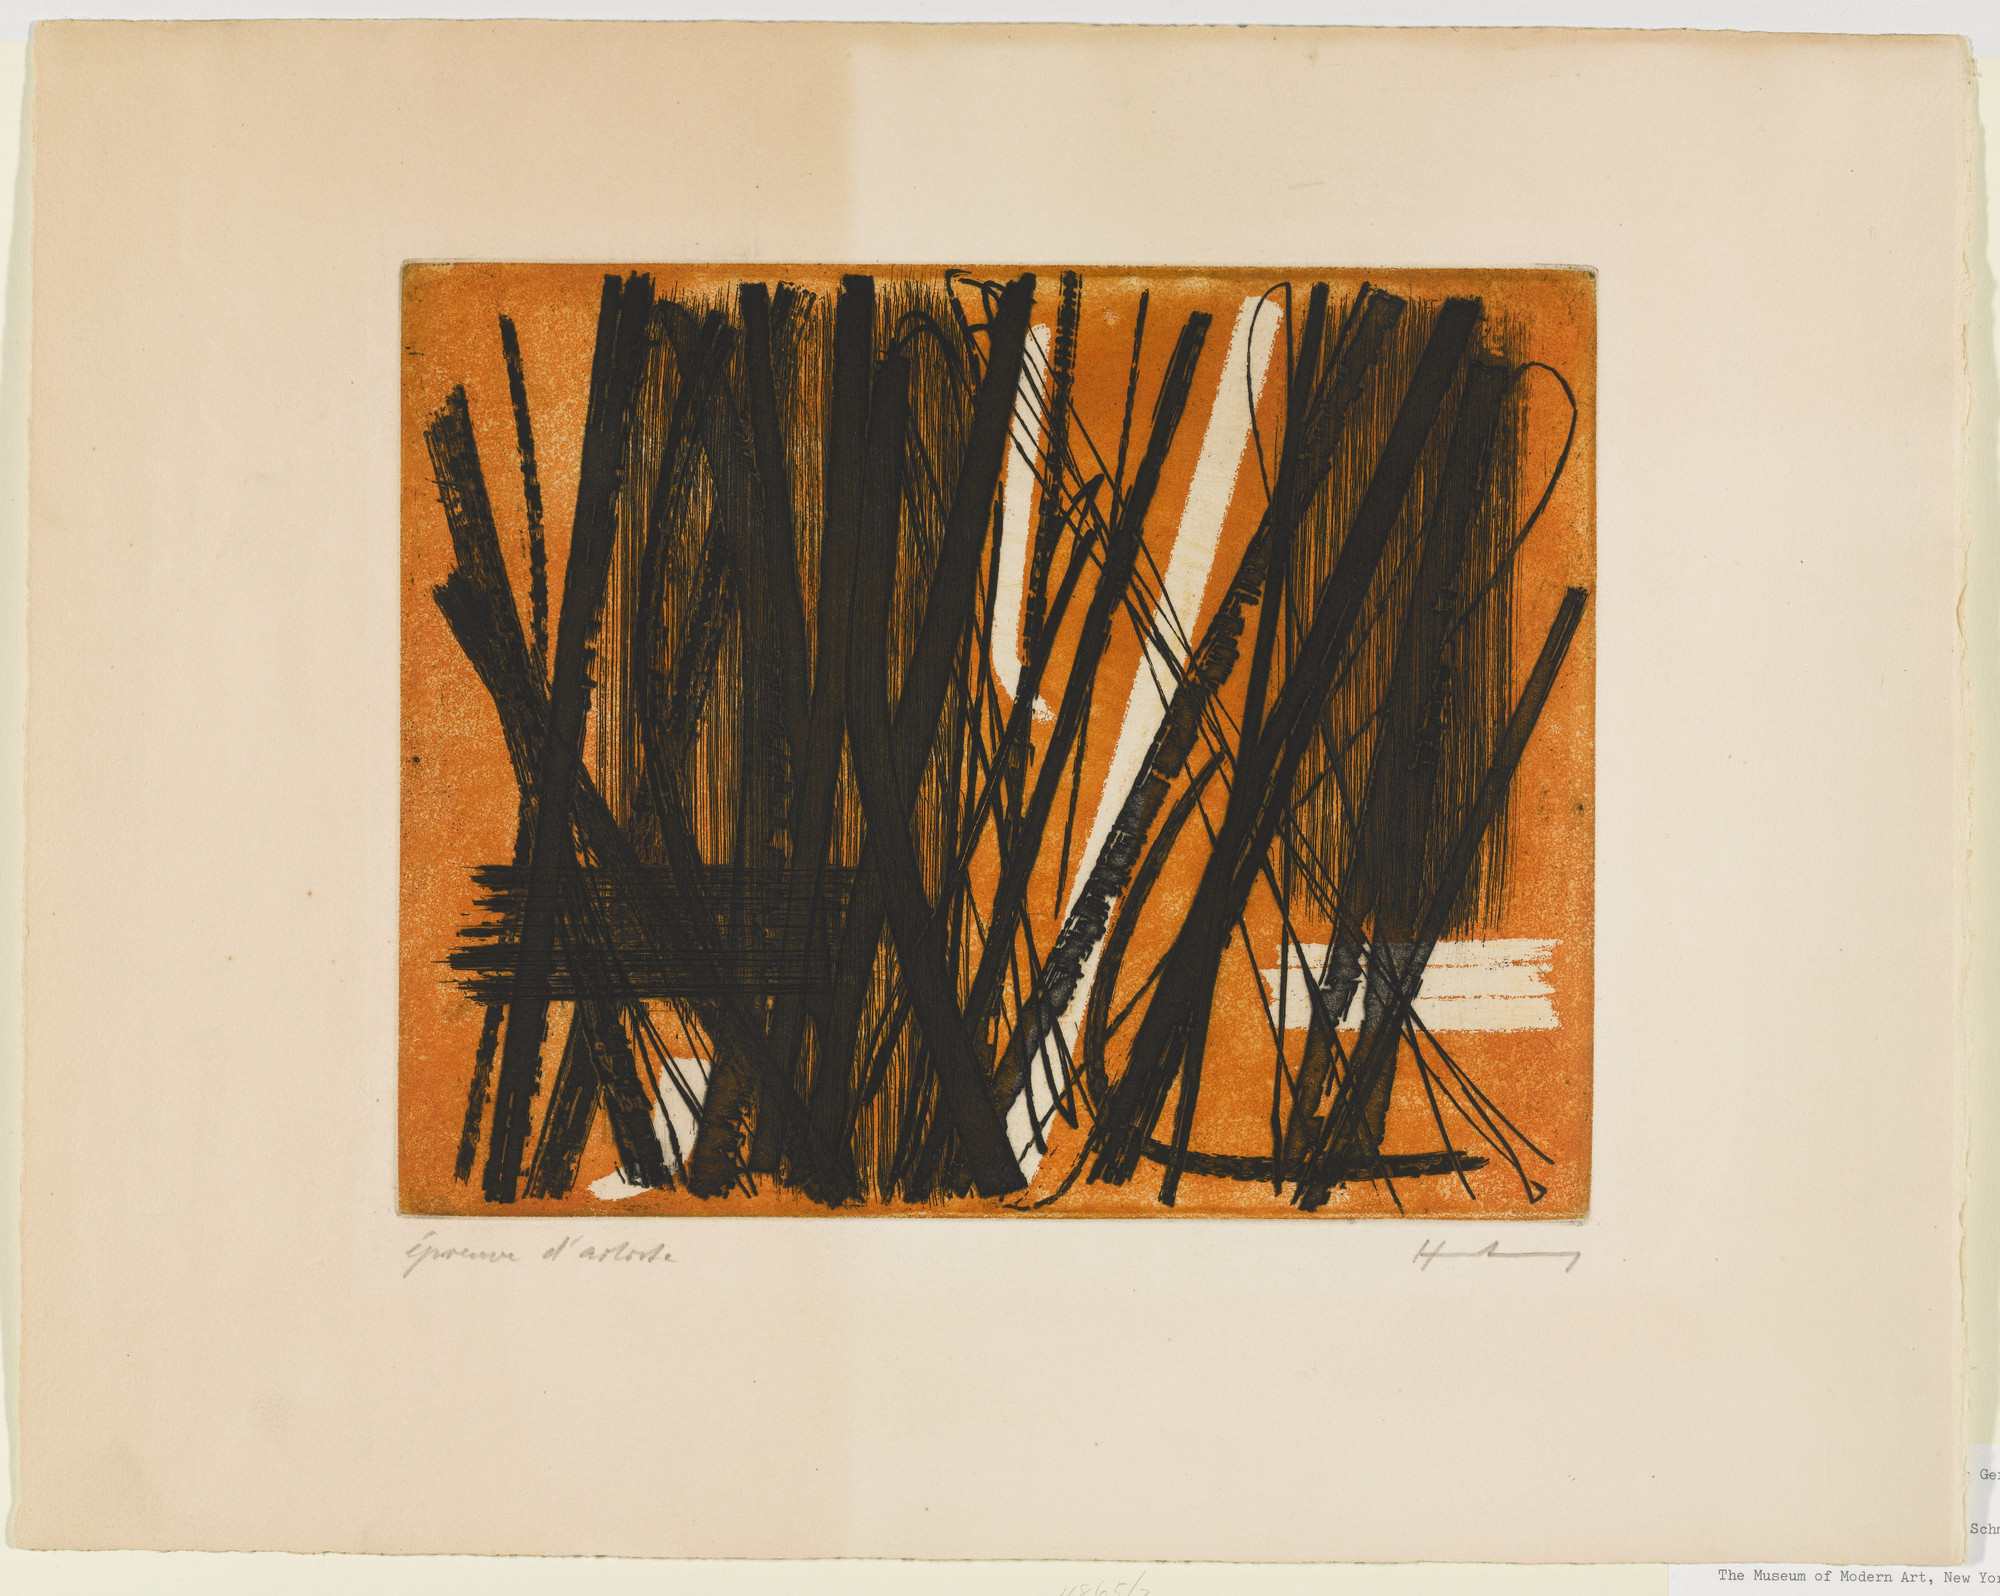 Hans Hartung. Etching #5. (1953)